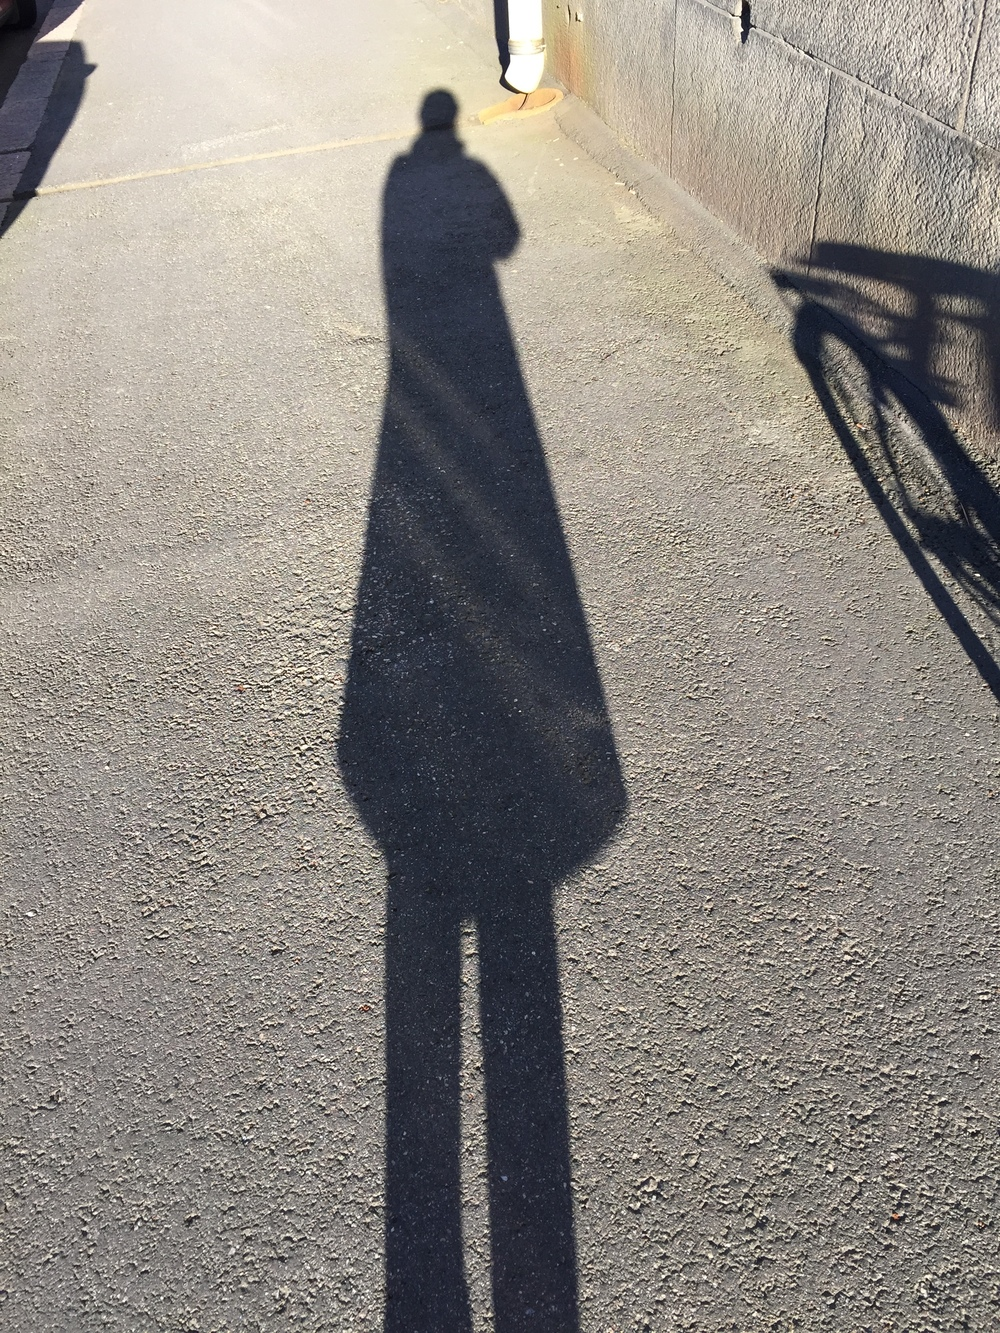 4pm shadow